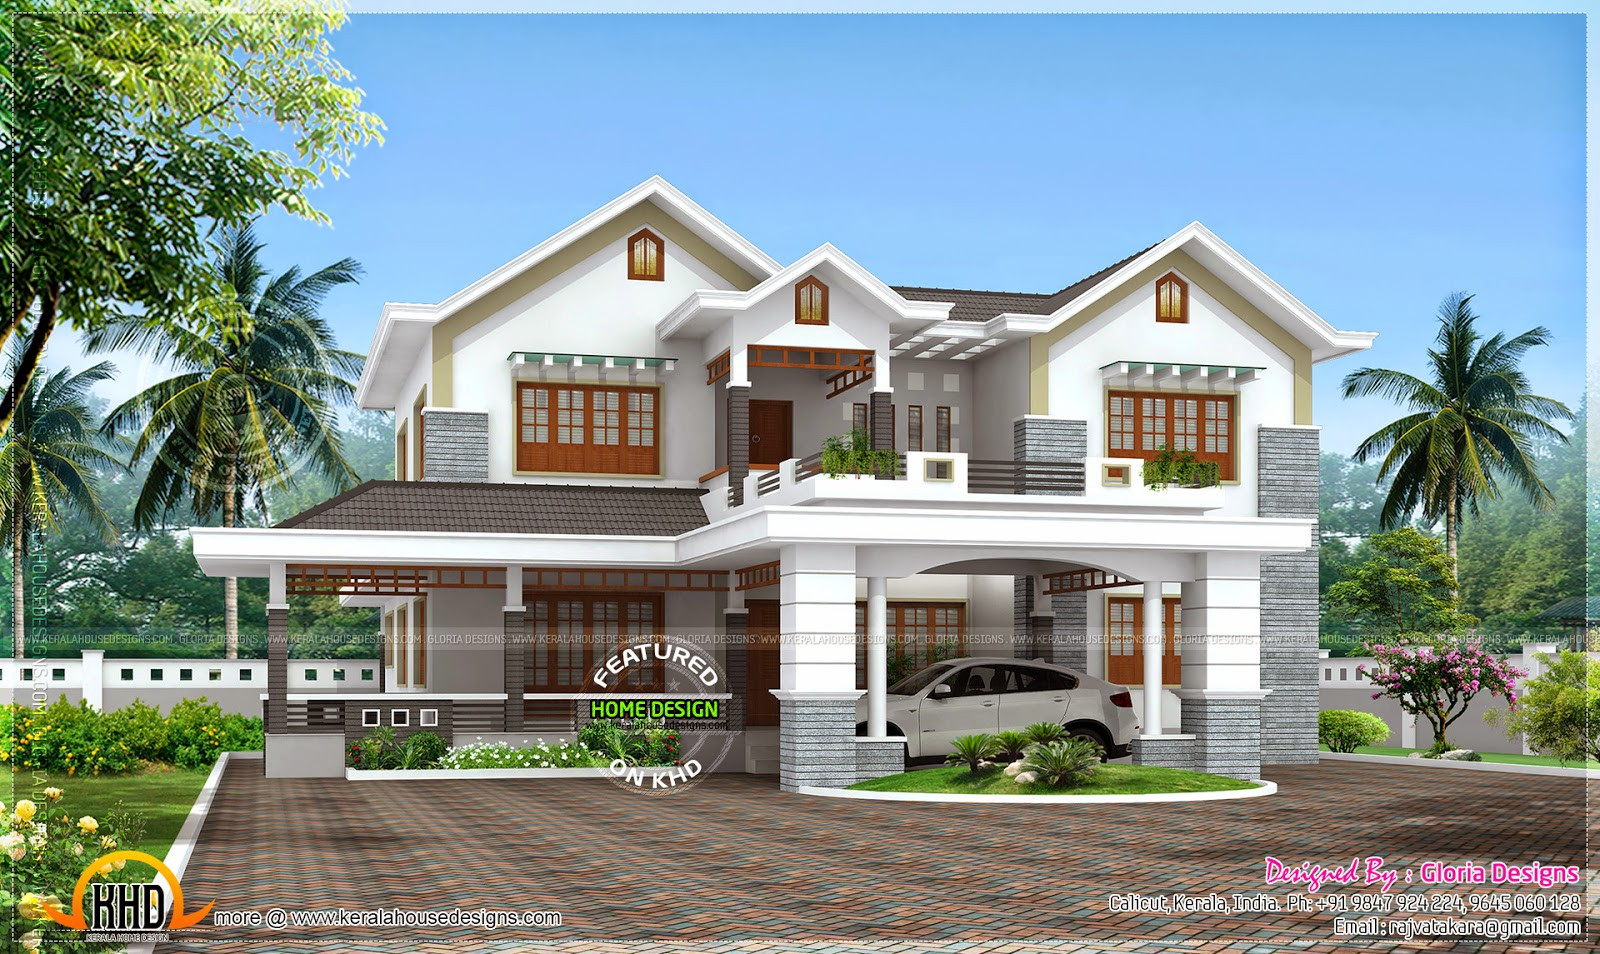 Beautiful 4 bedroom modern house kerala home design and for Best beautiful house